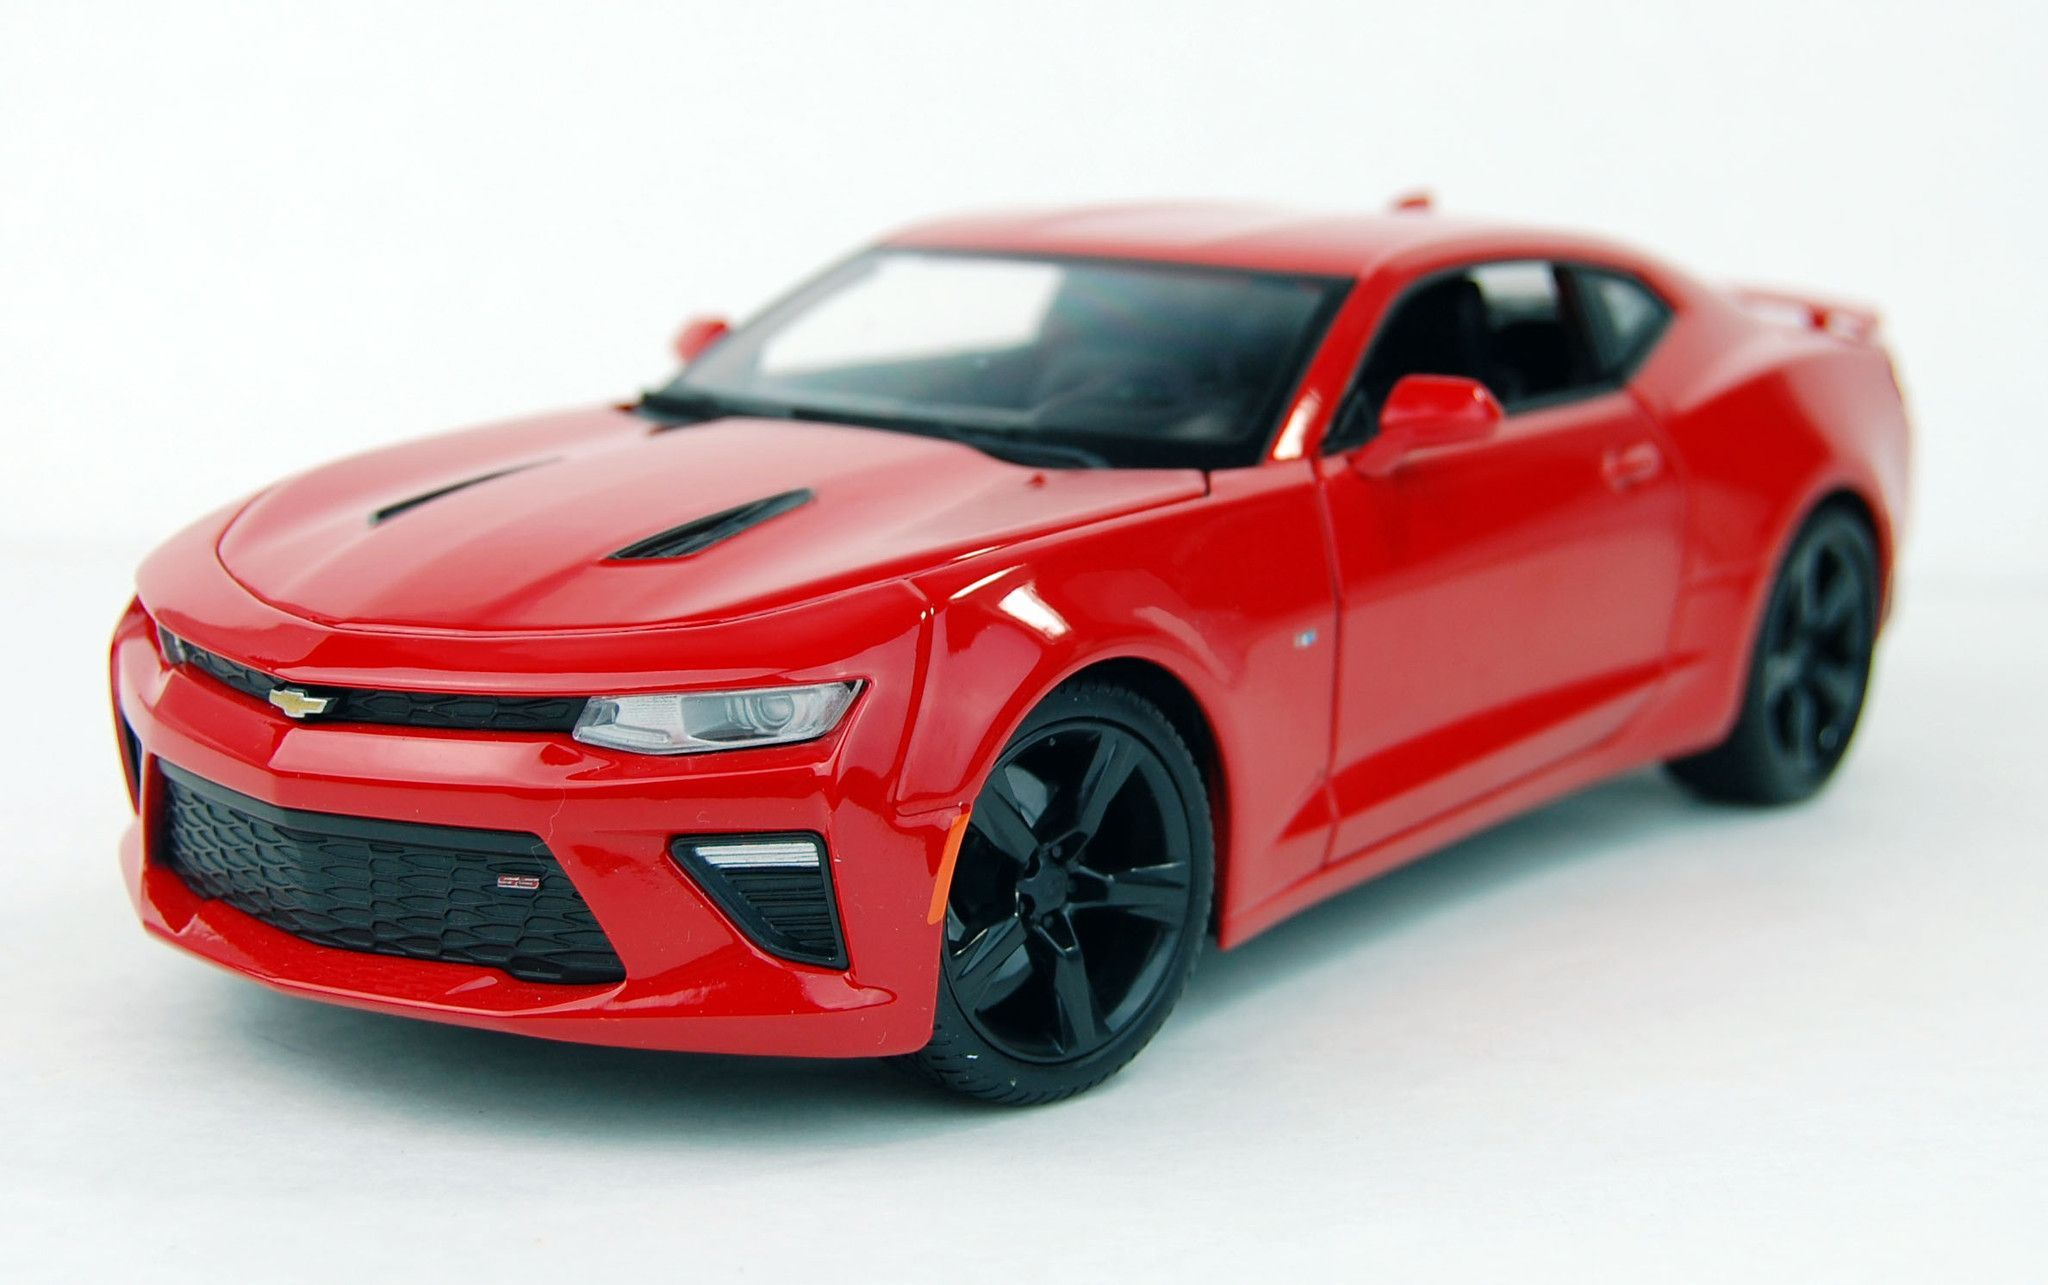 2016 Chevrolet Camaro SS Diecast Model Car Red Maisto 31689 1/18